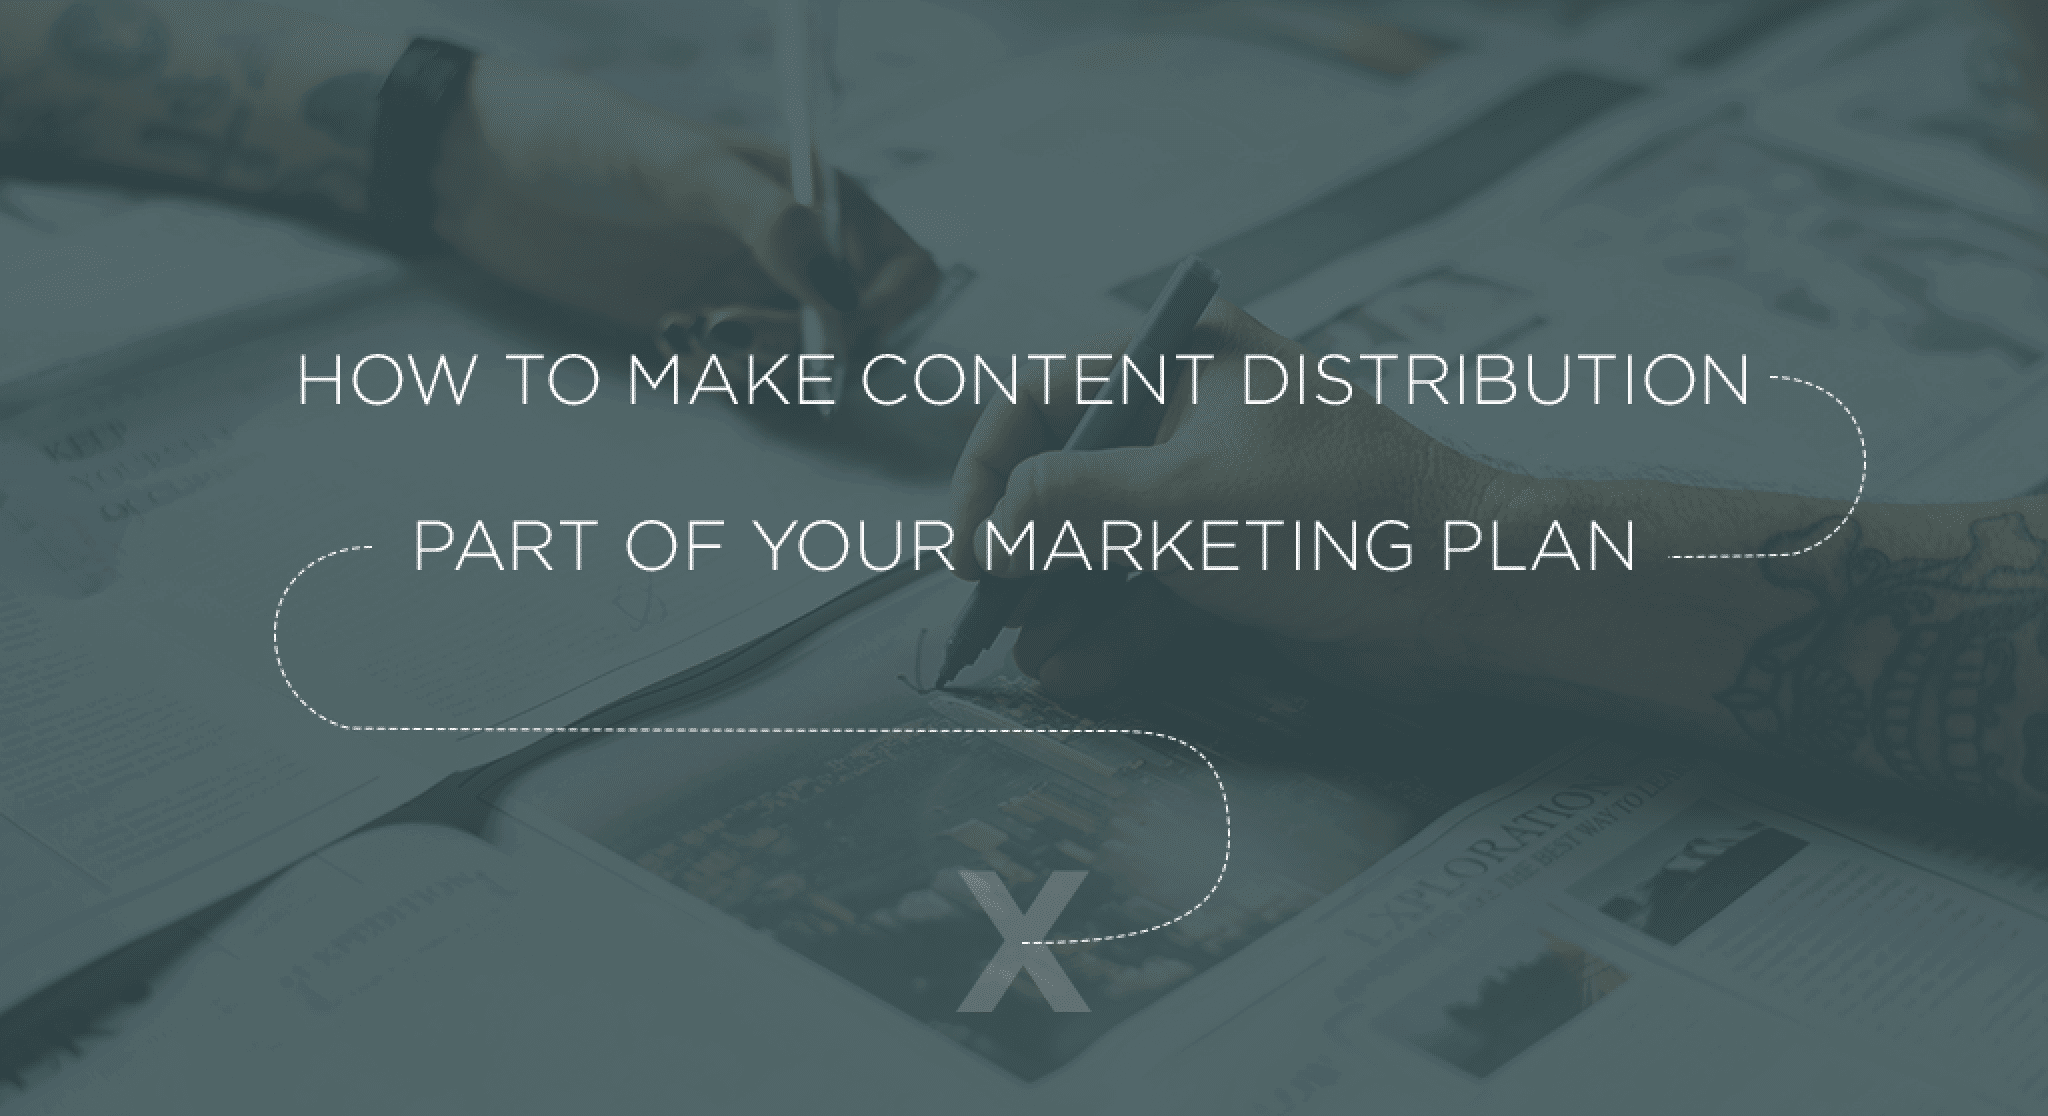 How to Make Content Distribution Part of Your Marketing Plan